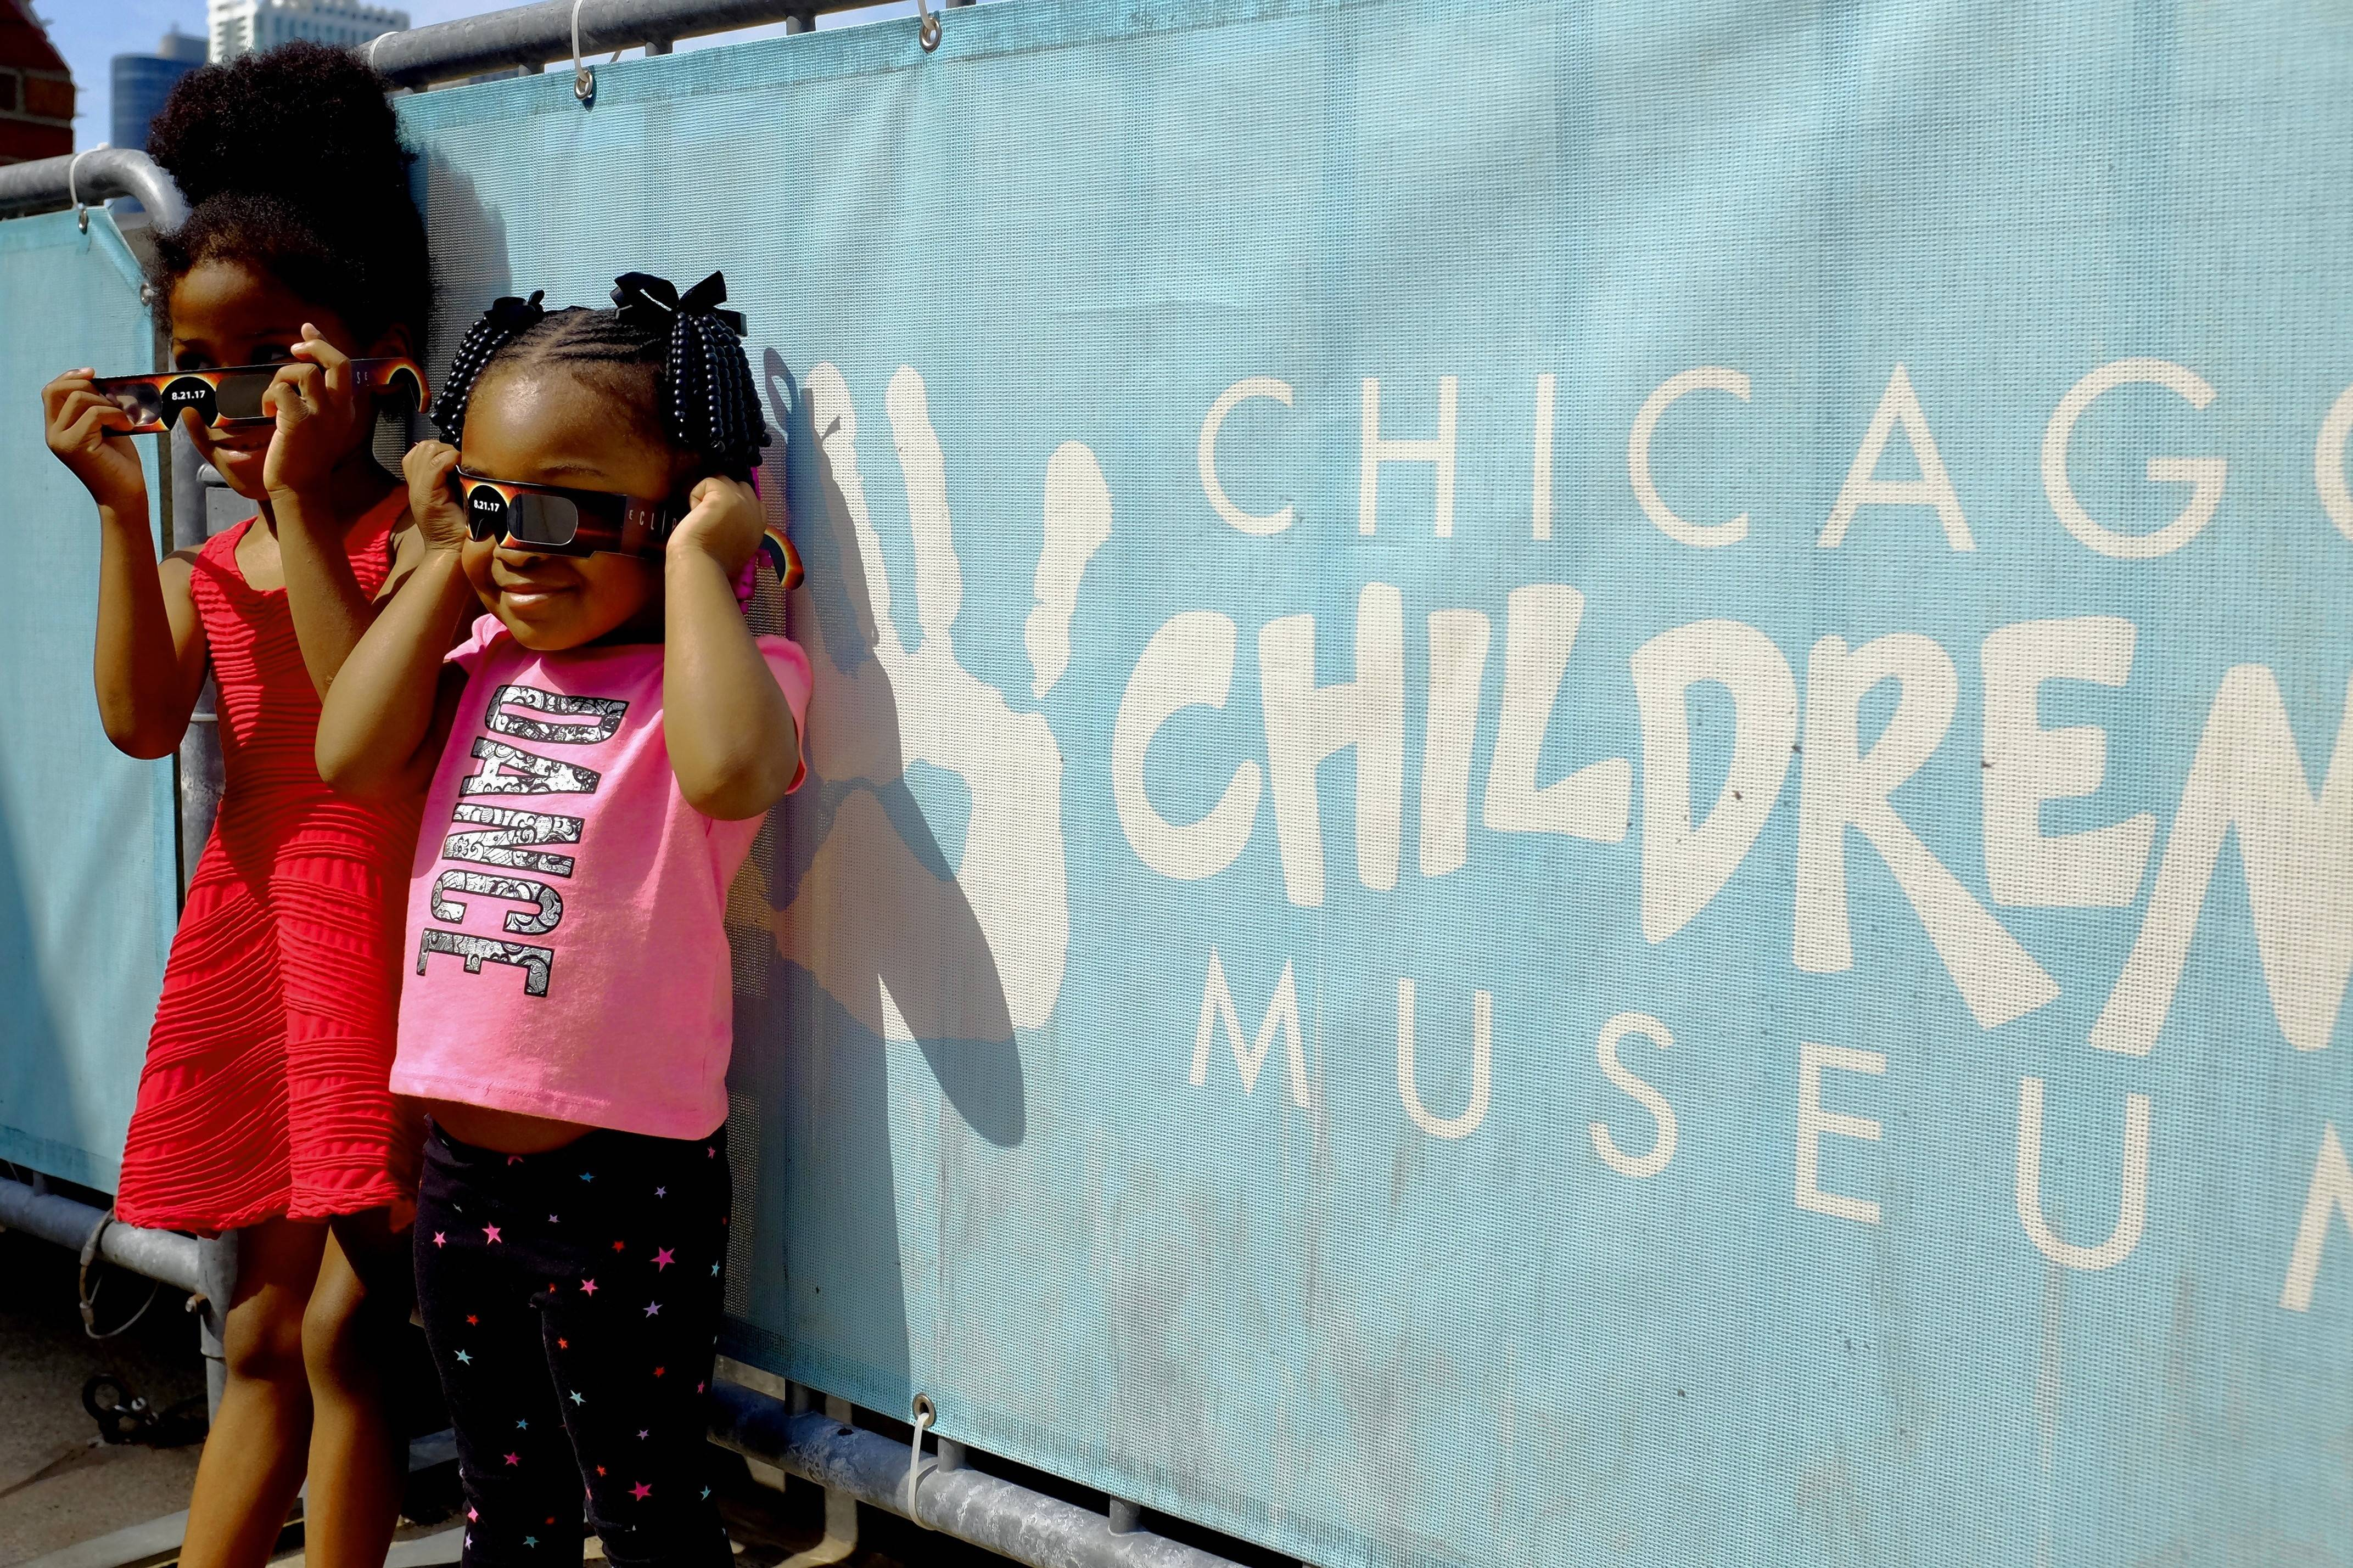 Take in the partial solar eclipse with your kids Monday, Aug. 21, at the Chicago Children's Museum, which holds special eclipse viewing and programming from 11 a.m. to 2:30 p.m.